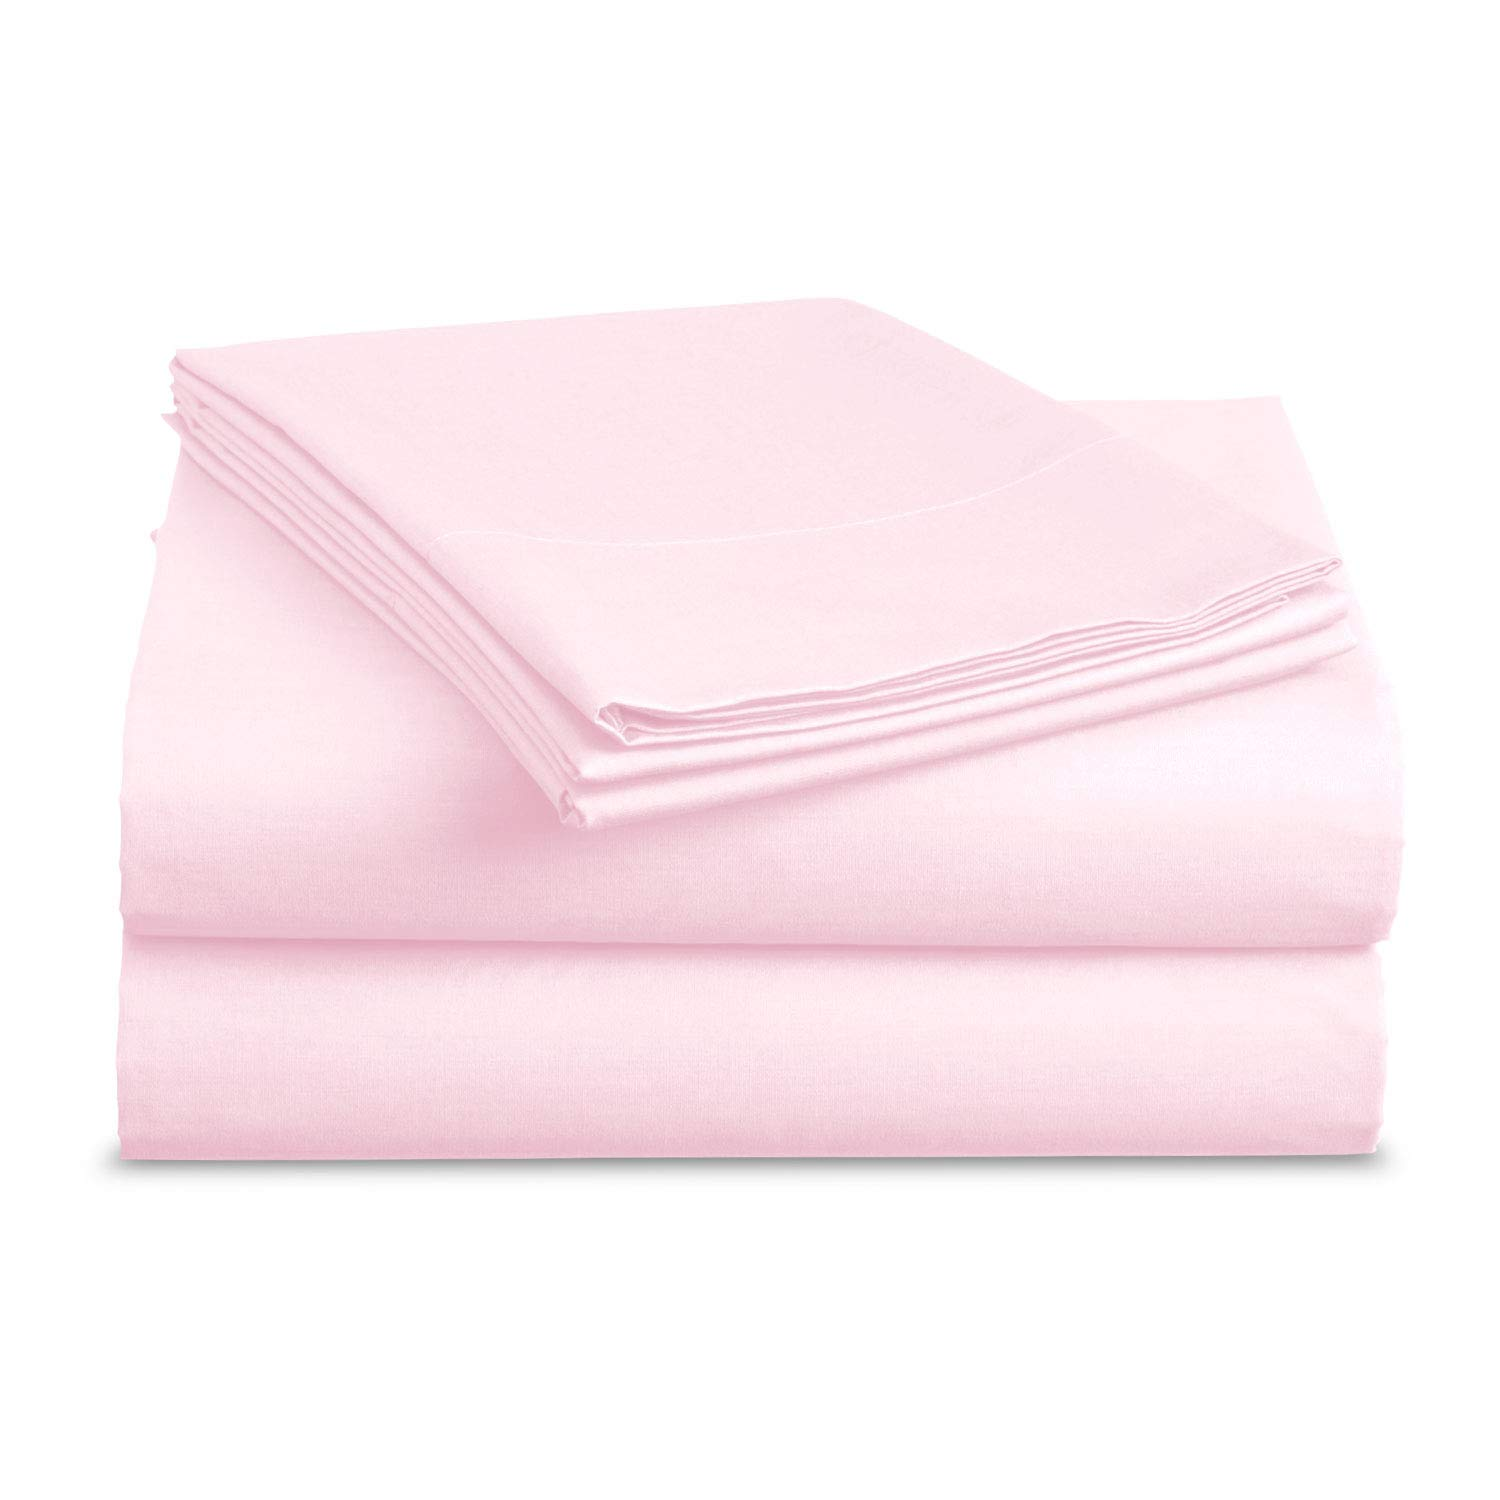 Luxe Bedding Sets - Microfiber Twin Sheet Set 3 Piece Bed Sheets, Deep Pocket Fitted Sheet, Flat Sheet, Pillow Case Twin Size - Baby Pink